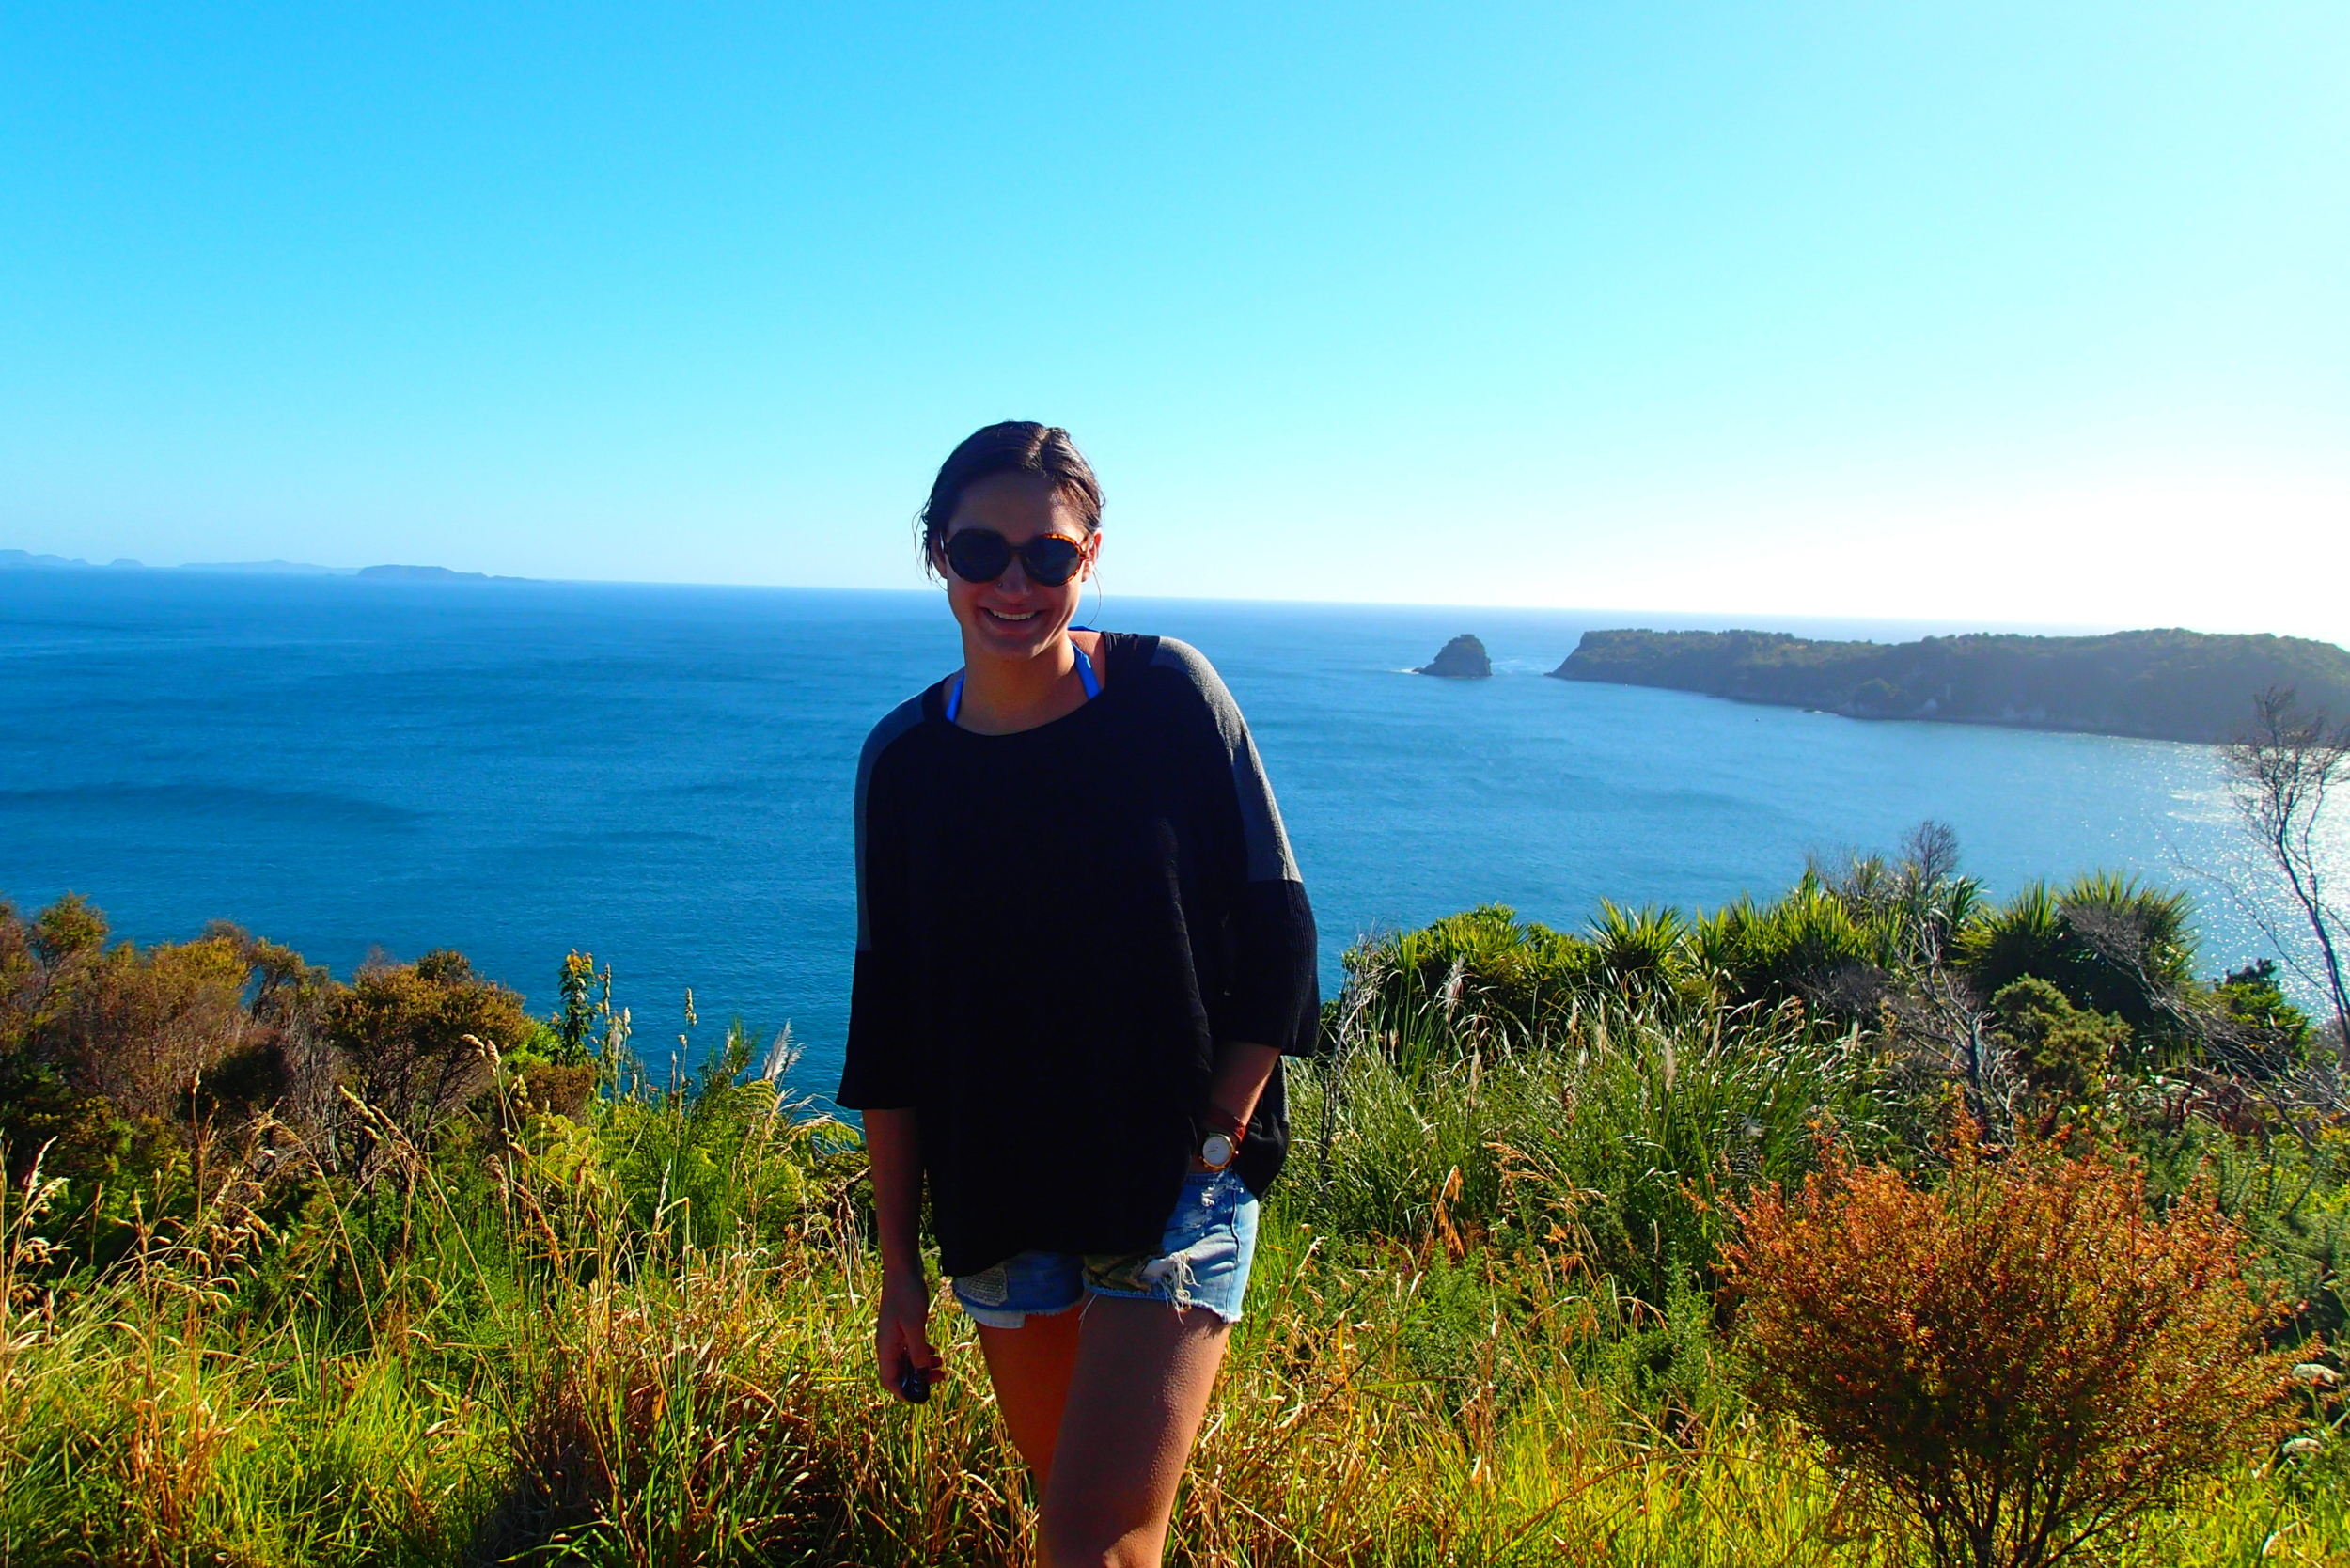 Soaking up the sun! Coromandel Peninsula, Northern Island